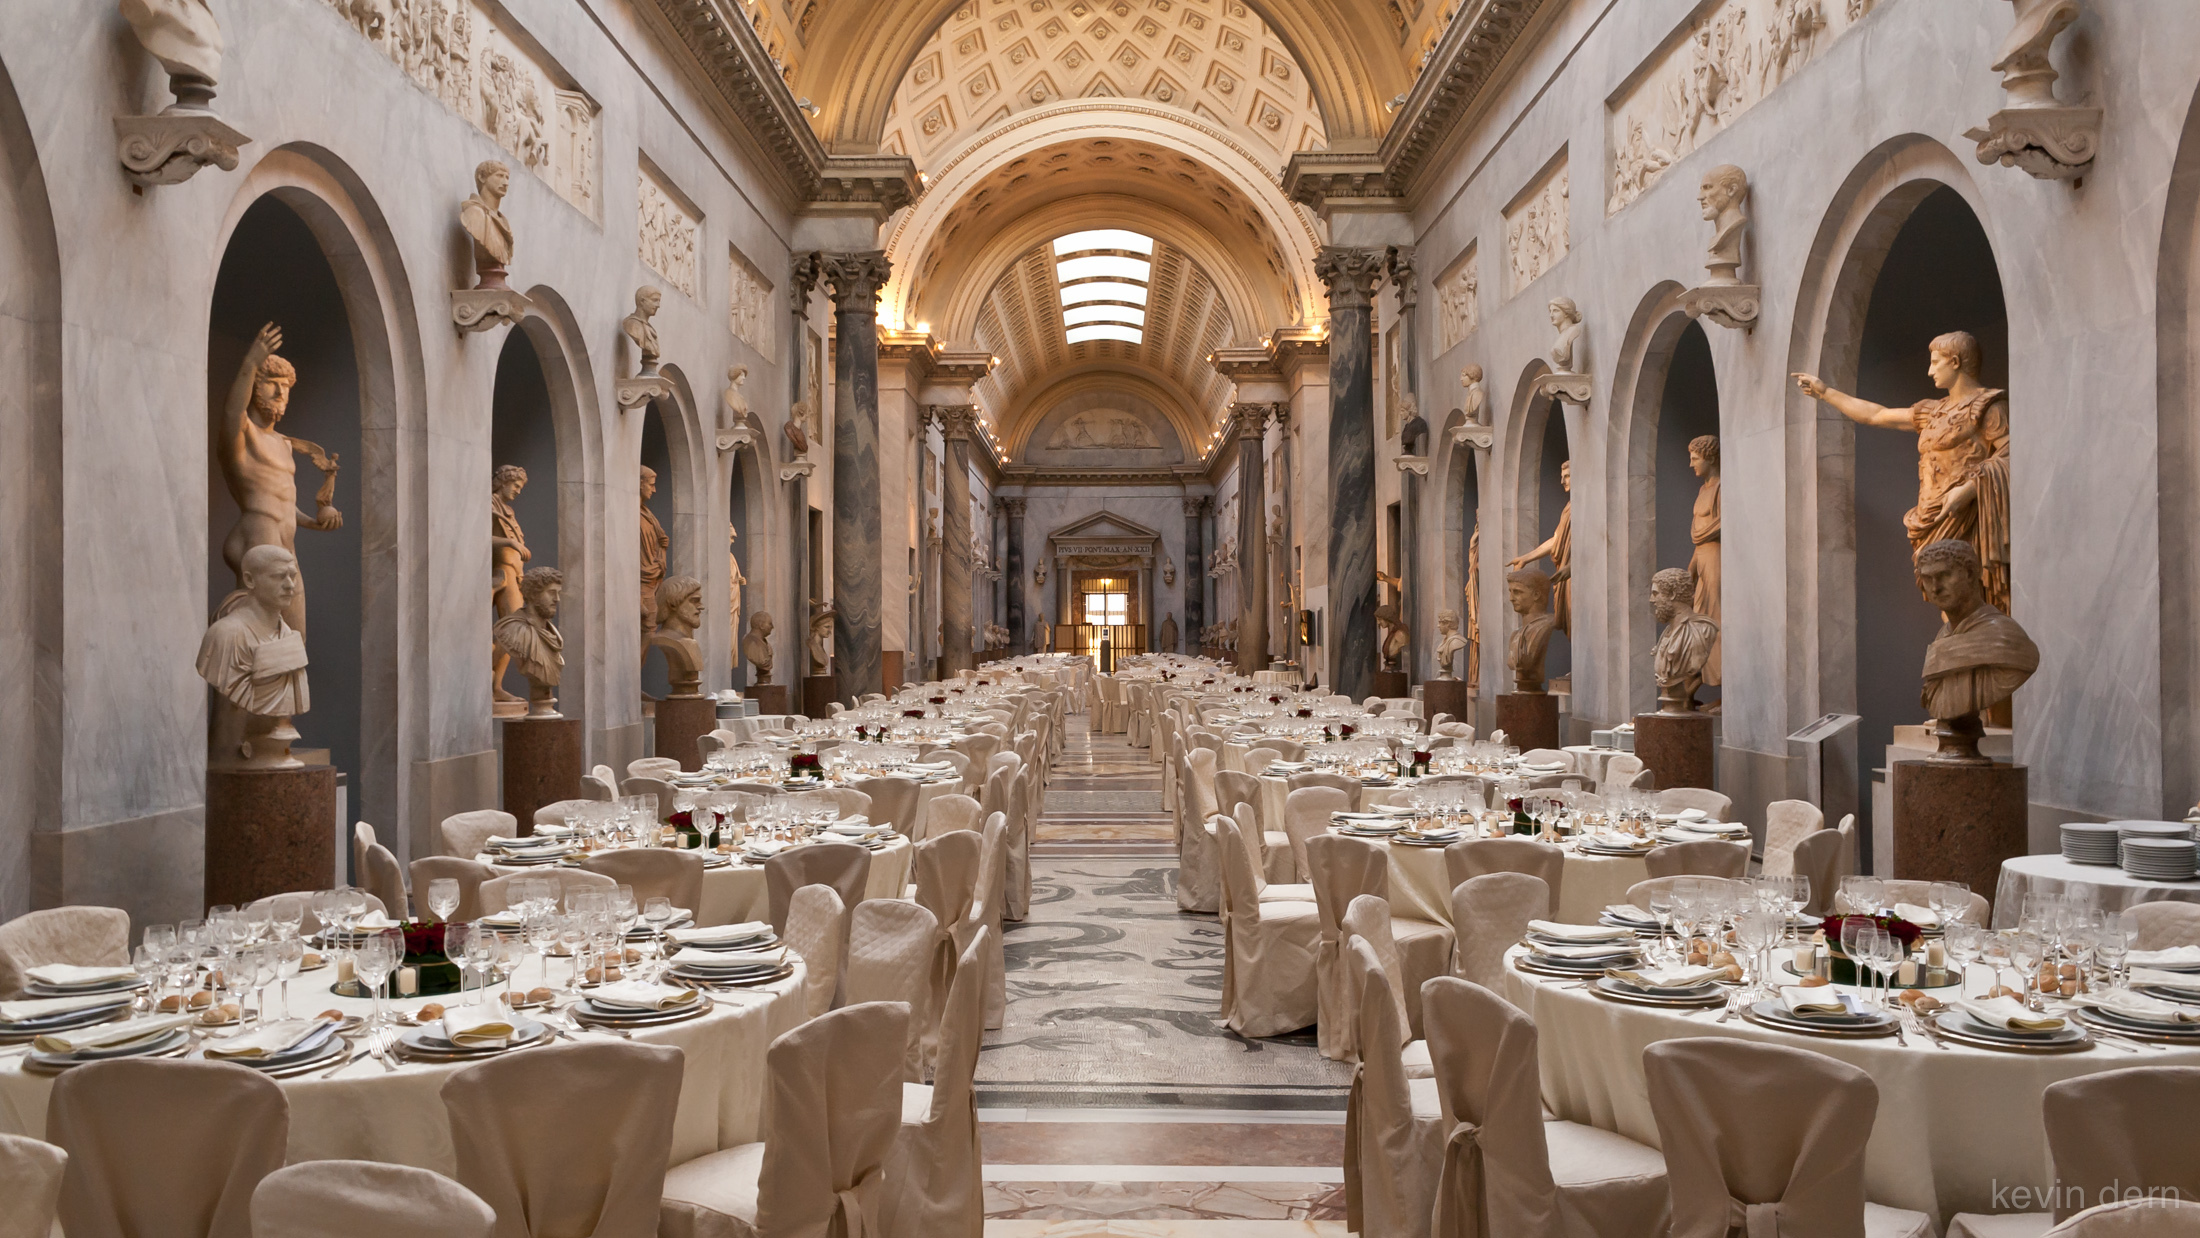 Gala dinner I planned for 300 people inside the Vatican in Rome.